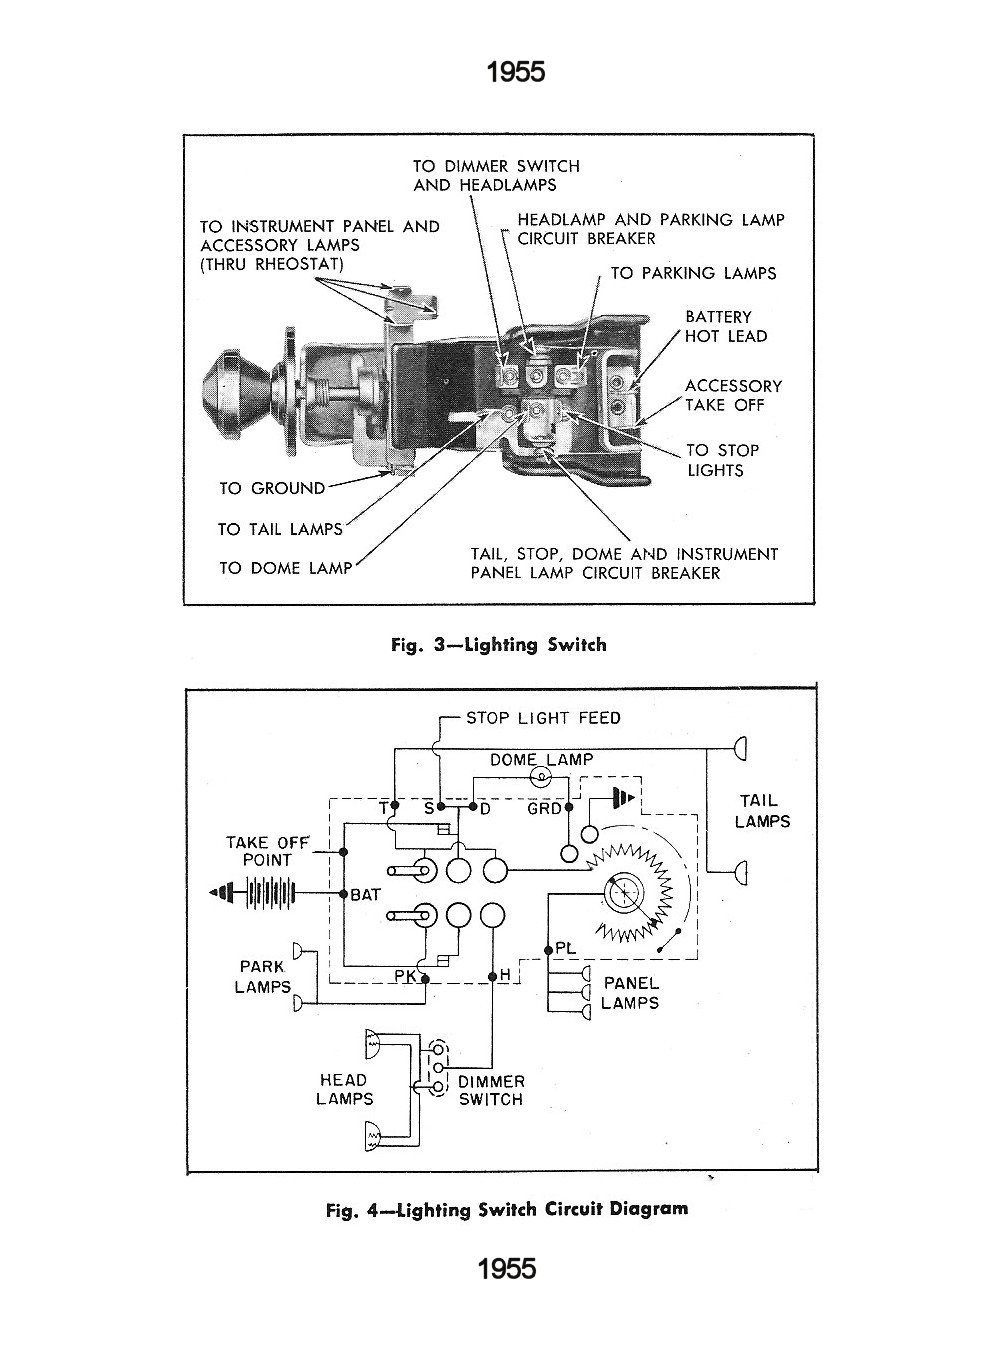 55csm1204a wiring diagram headlight switch 55 chevrolet readingrat net headlight switch wiring diagram at crackthecode.co